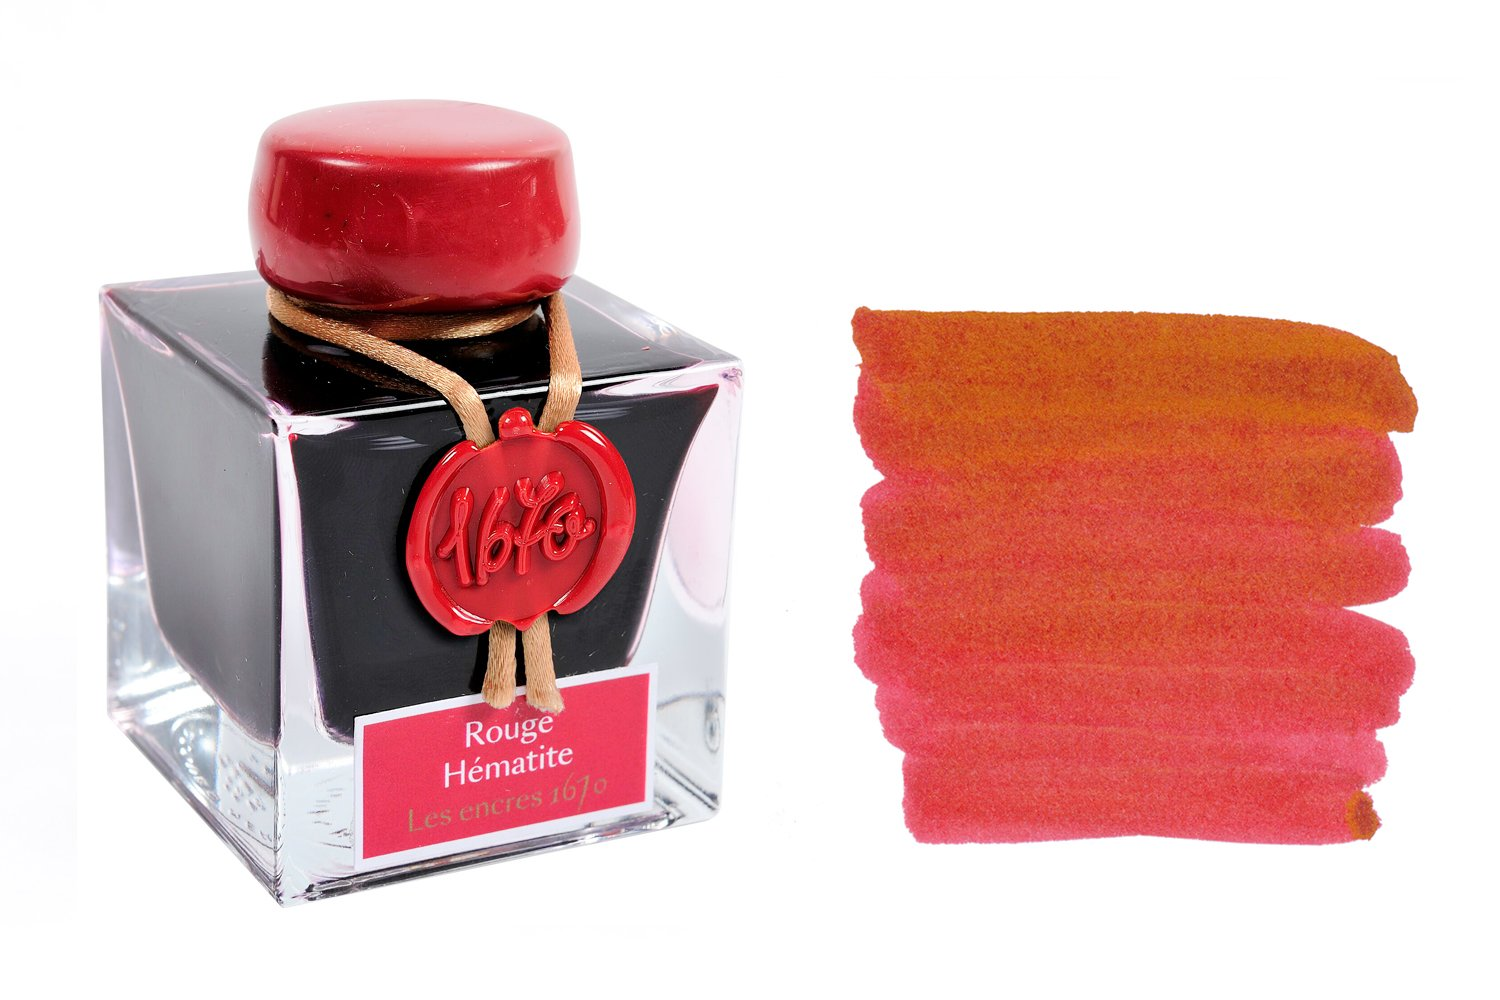 Jacques Herbin 1670 Rouge Hematite - 50ml Bottled Ink